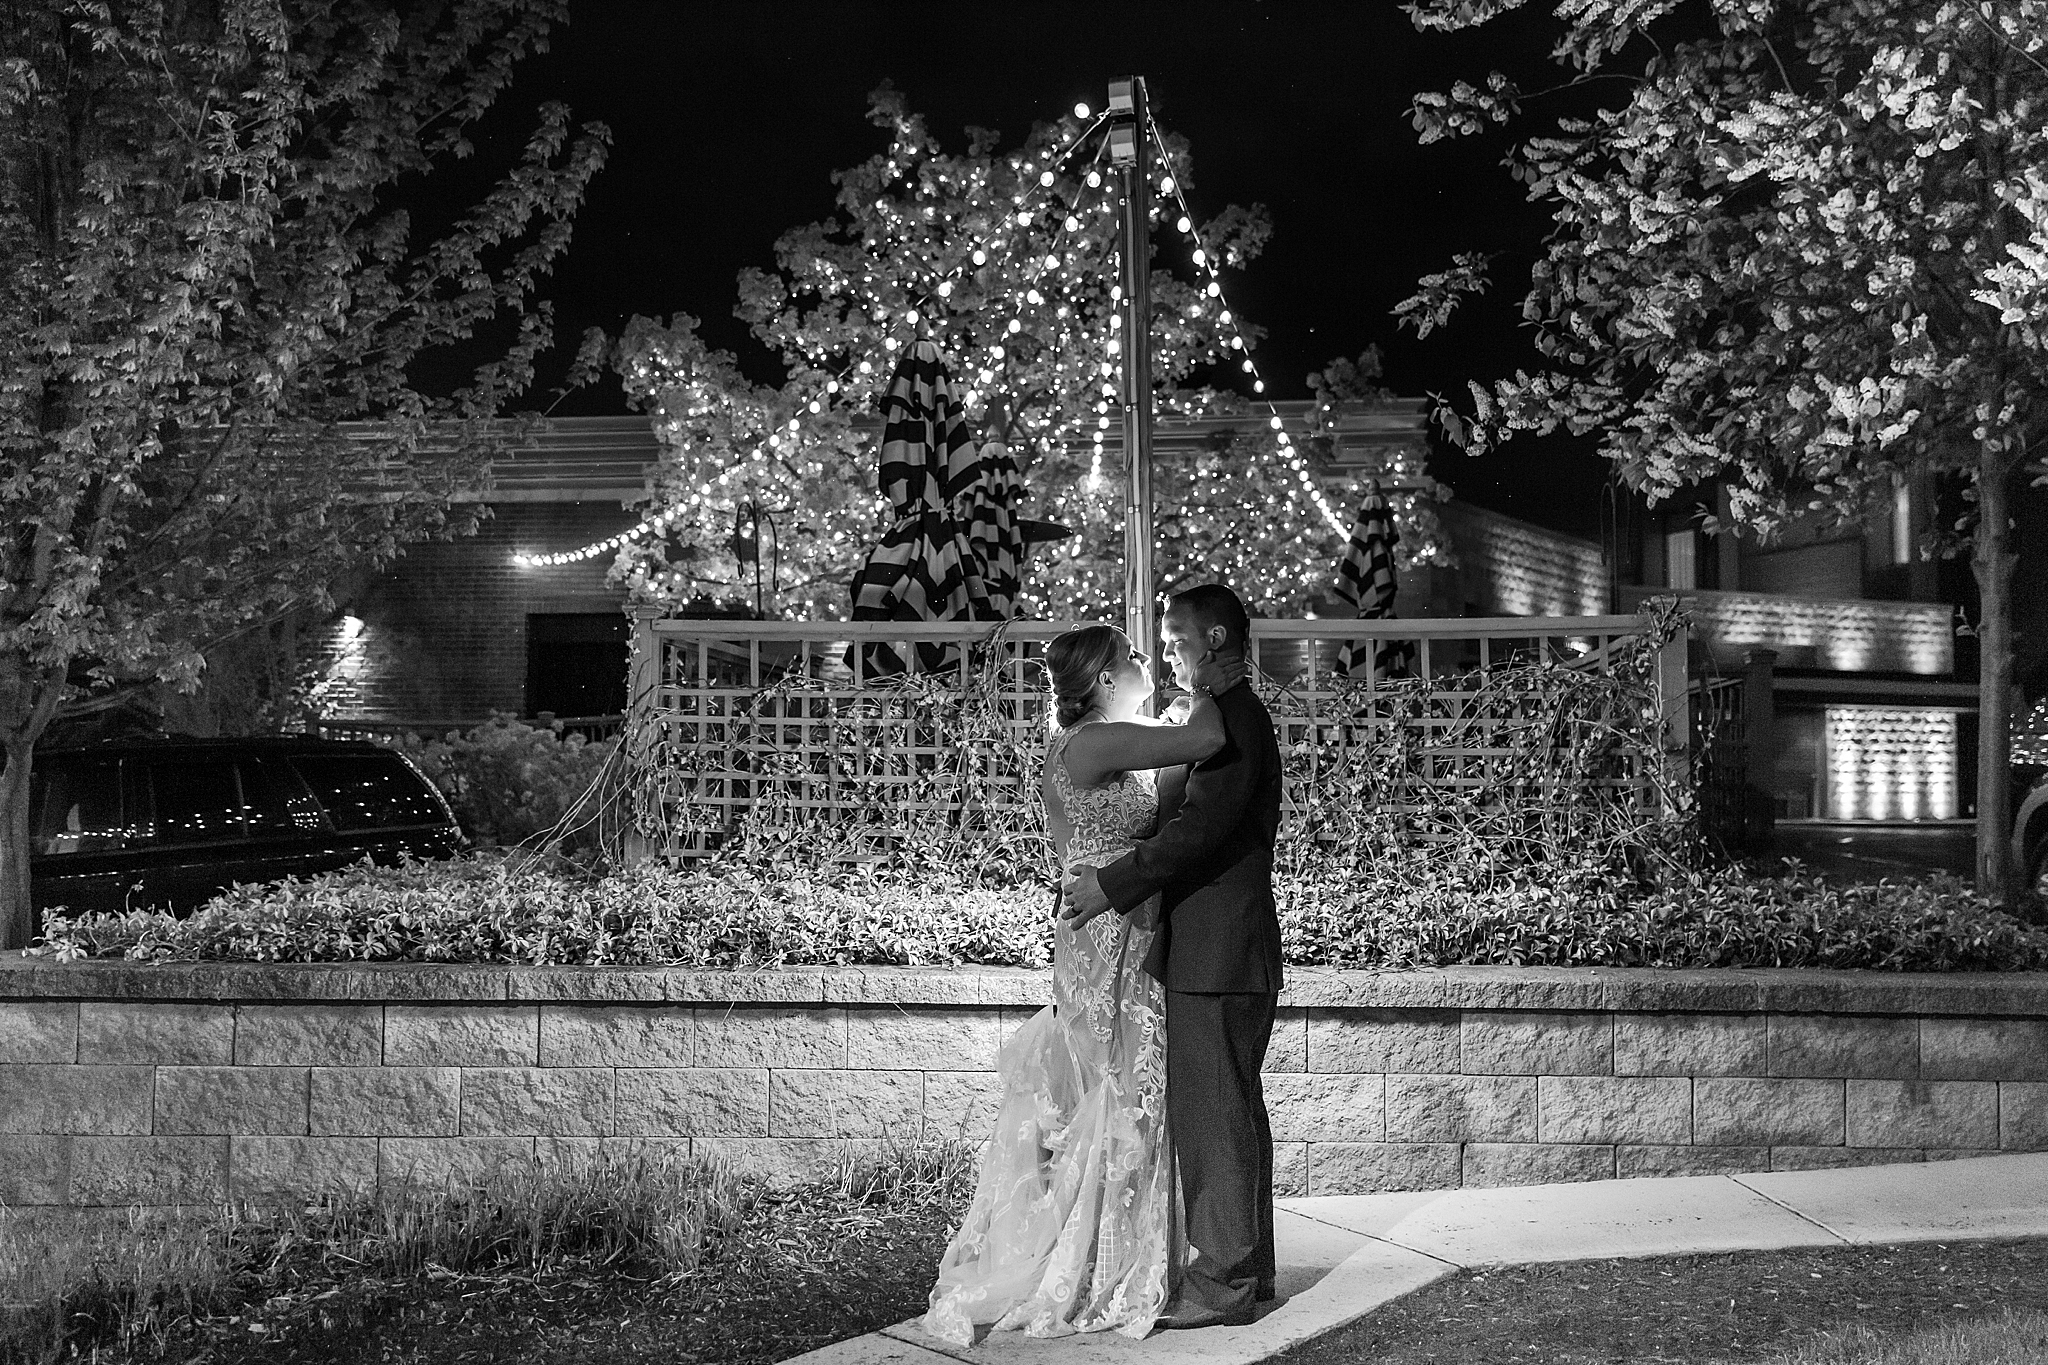 modern-romantic-wedding-photography-at-webers-in-ann-arbor-michigan-by-courtney-carolyn-photography_0085.jpg